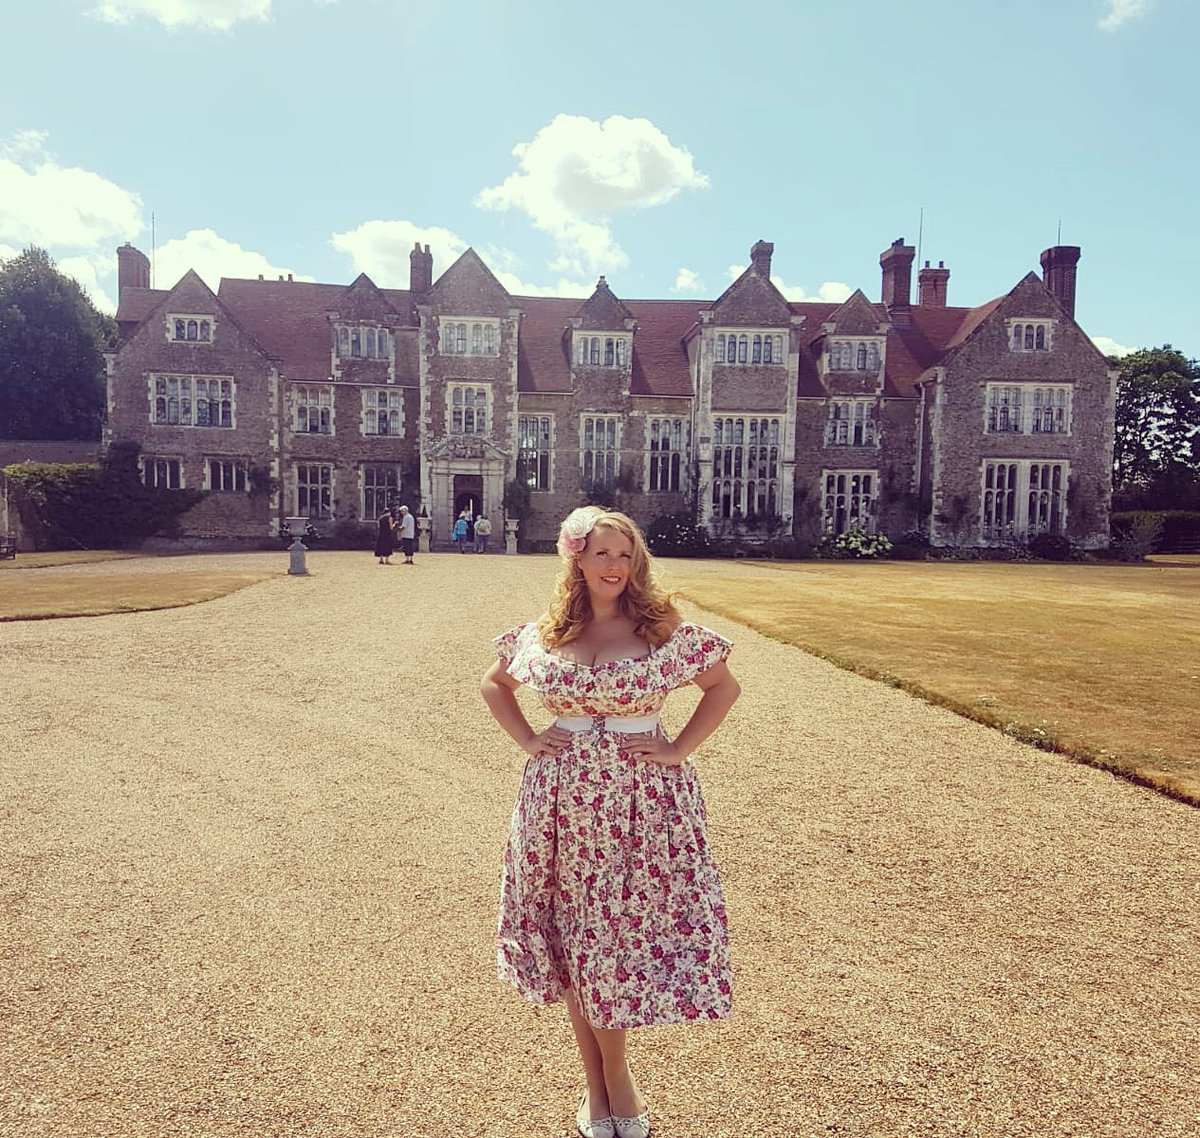 RT @LiannaHaynes Lovely second day singing at @LoseleyGdnShow today! Such a gorgeous location. Back again for the last day tomorrow! @LoseleyPark